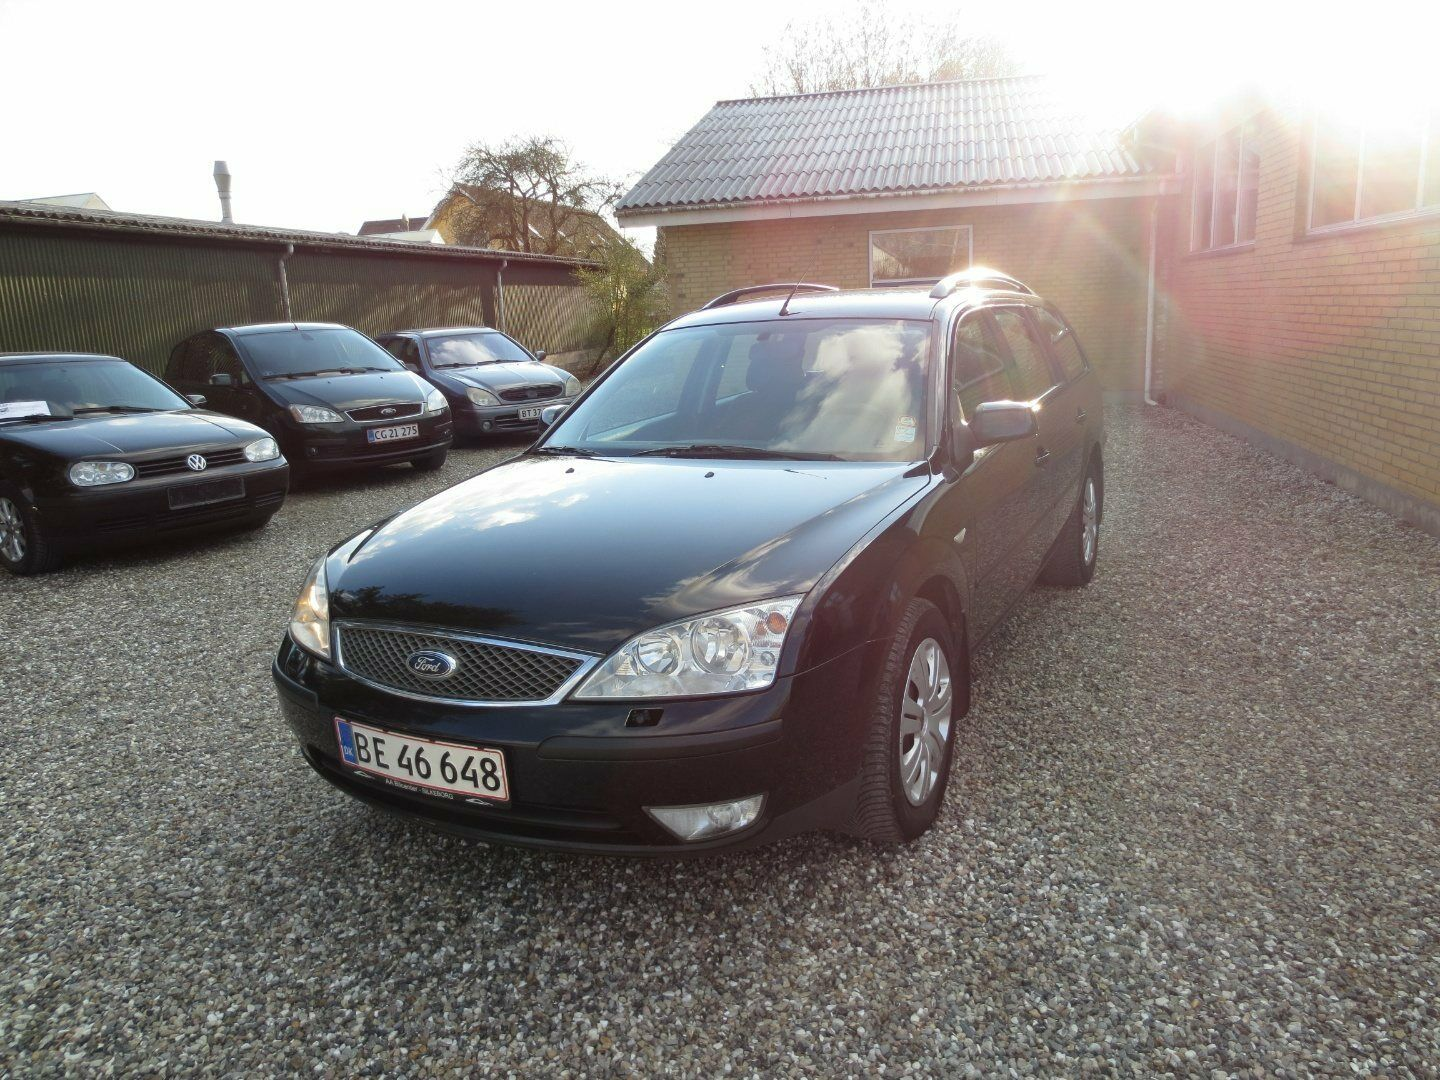 Ford Mondeo 2,0 TDCi 130 Trend stc. 5d - 16.900 kr.